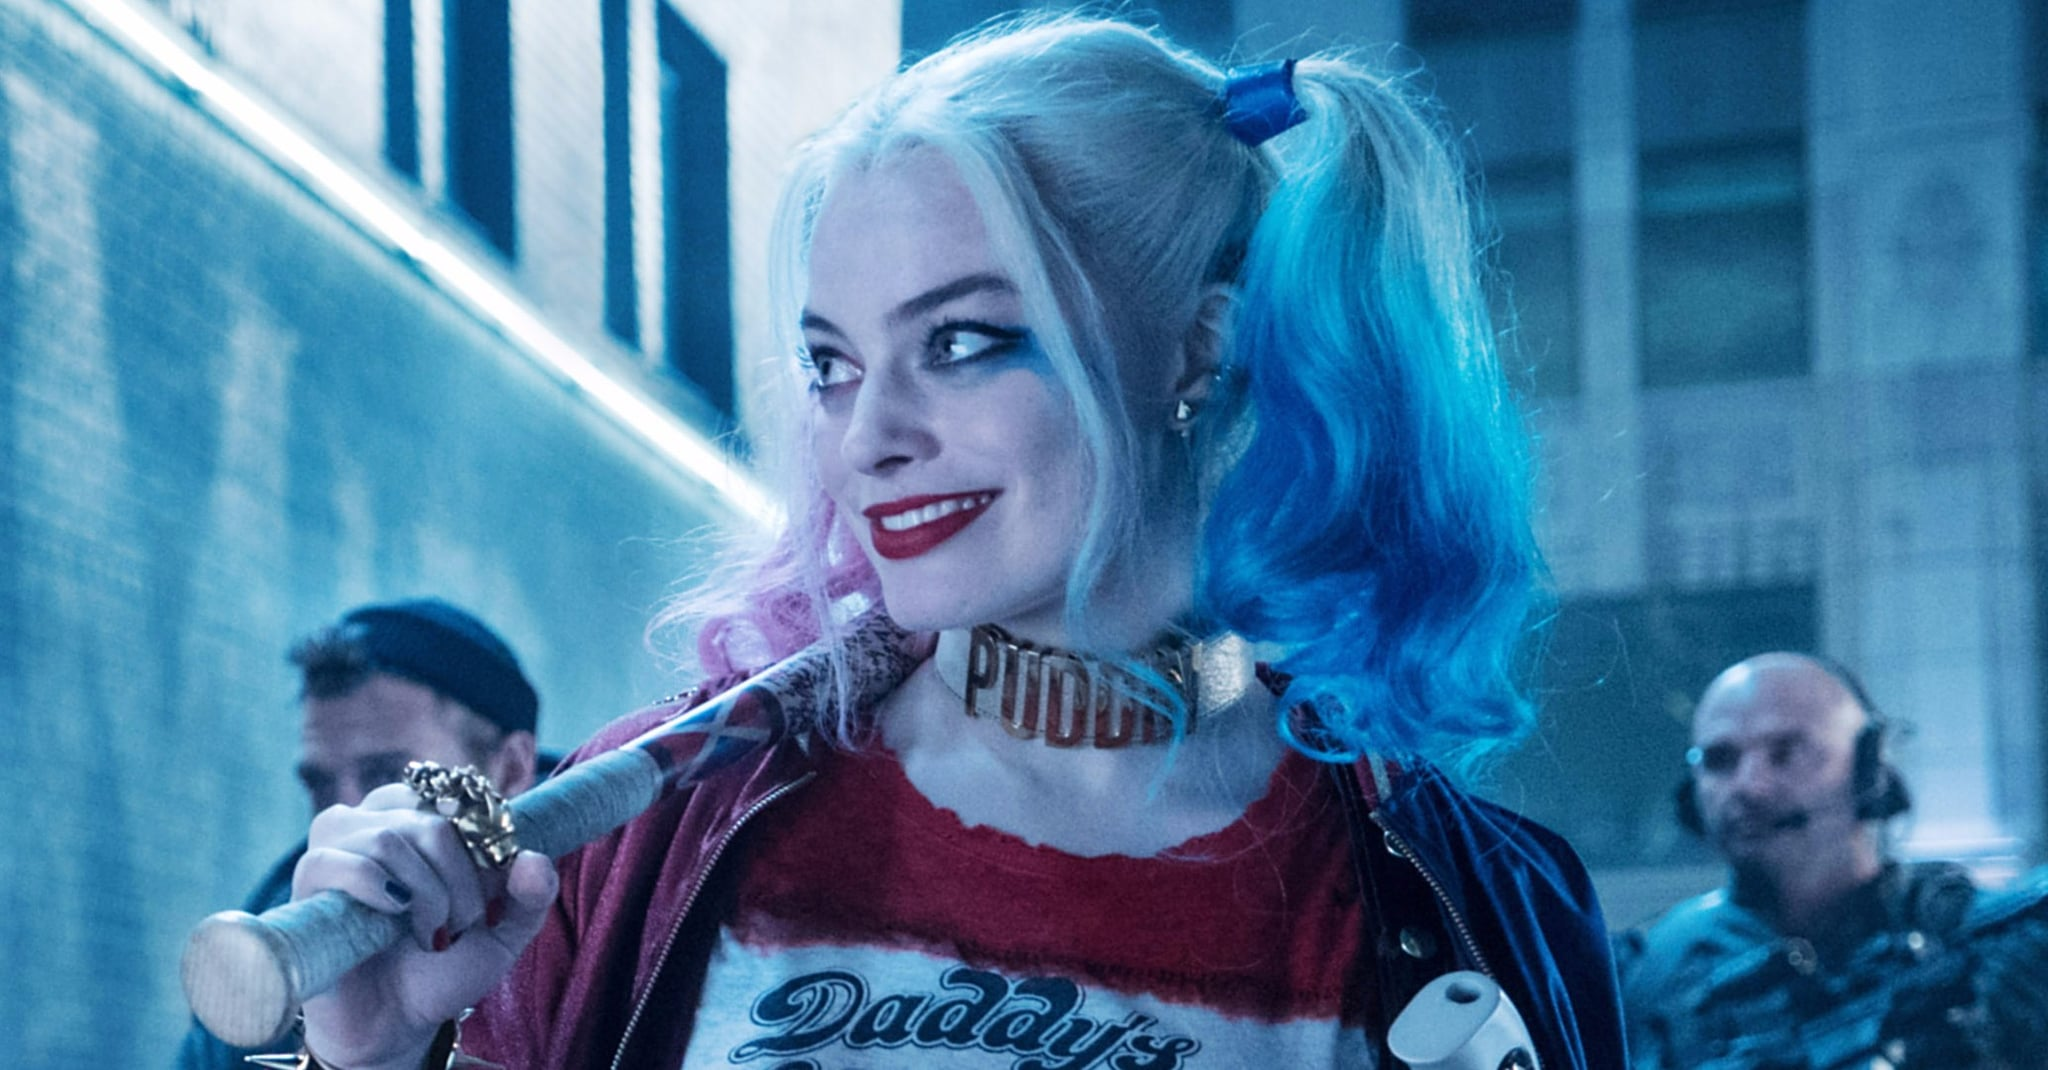 43bb61bdb5f0 Harley Quinn Spinoff Movie Details. Get Excited! Margot Robbie s Harley  Quinn Solo ...